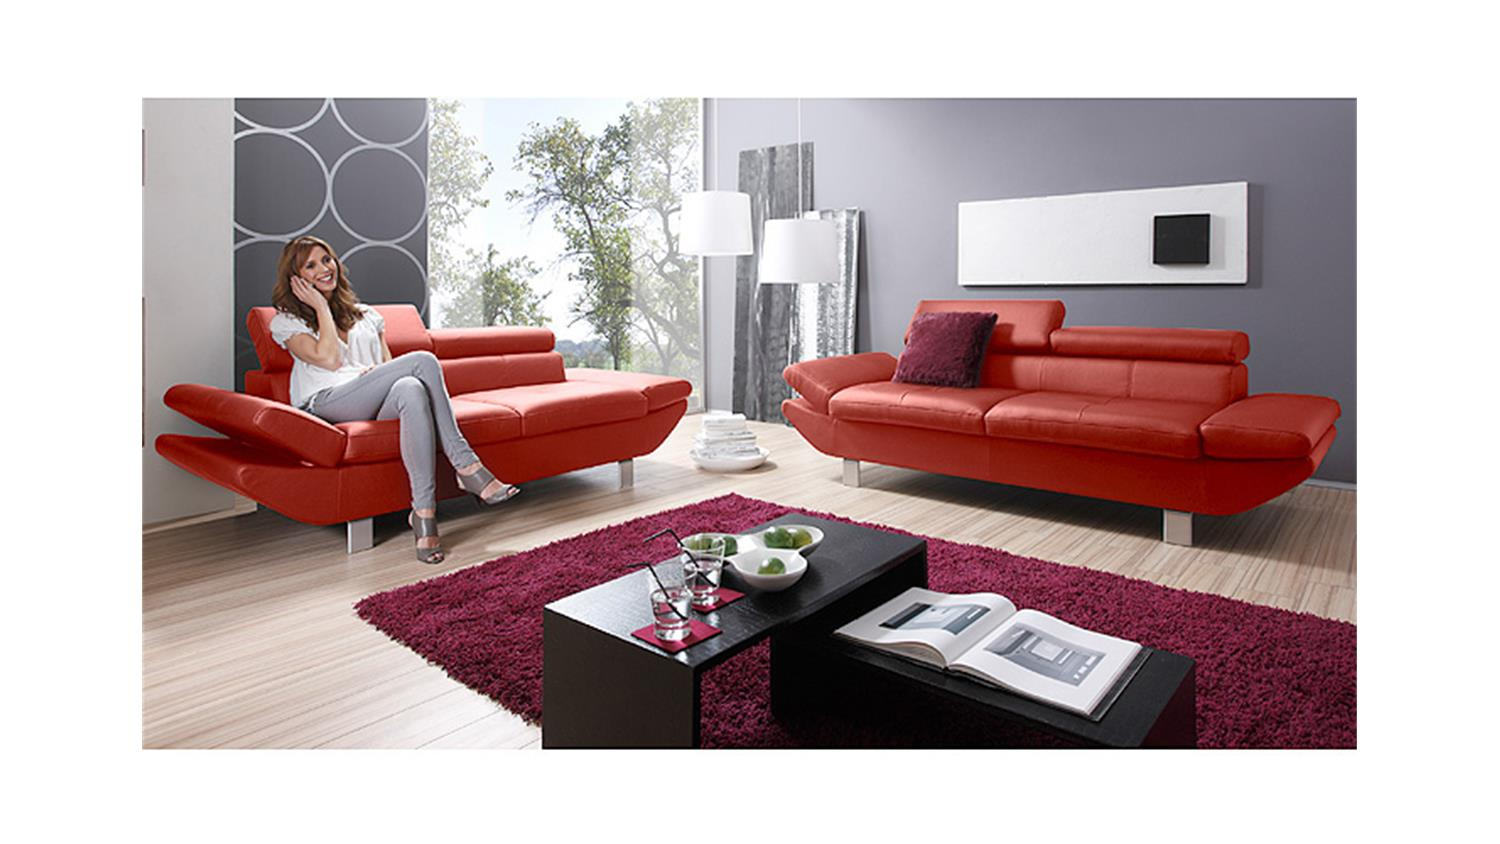 sofa garnitur carrier polsterm bel mit relaxfunkion in rot. Black Bedroom Furniture Sets. Home Design Ideas